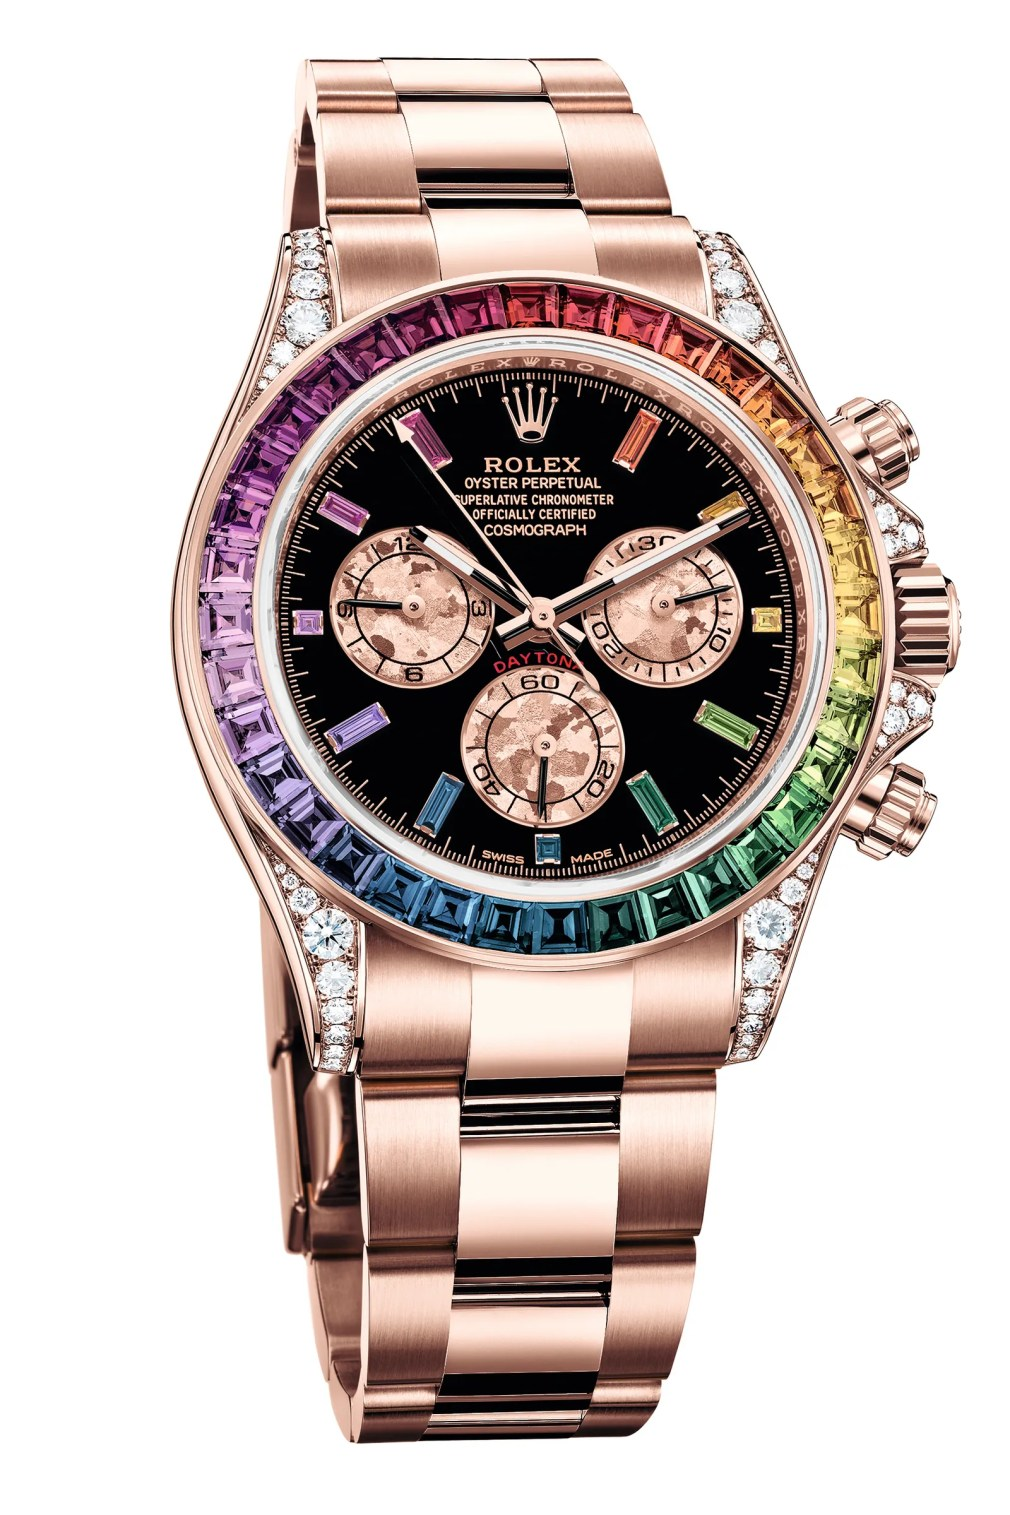 A rose gold watch with a rainbow diamond face